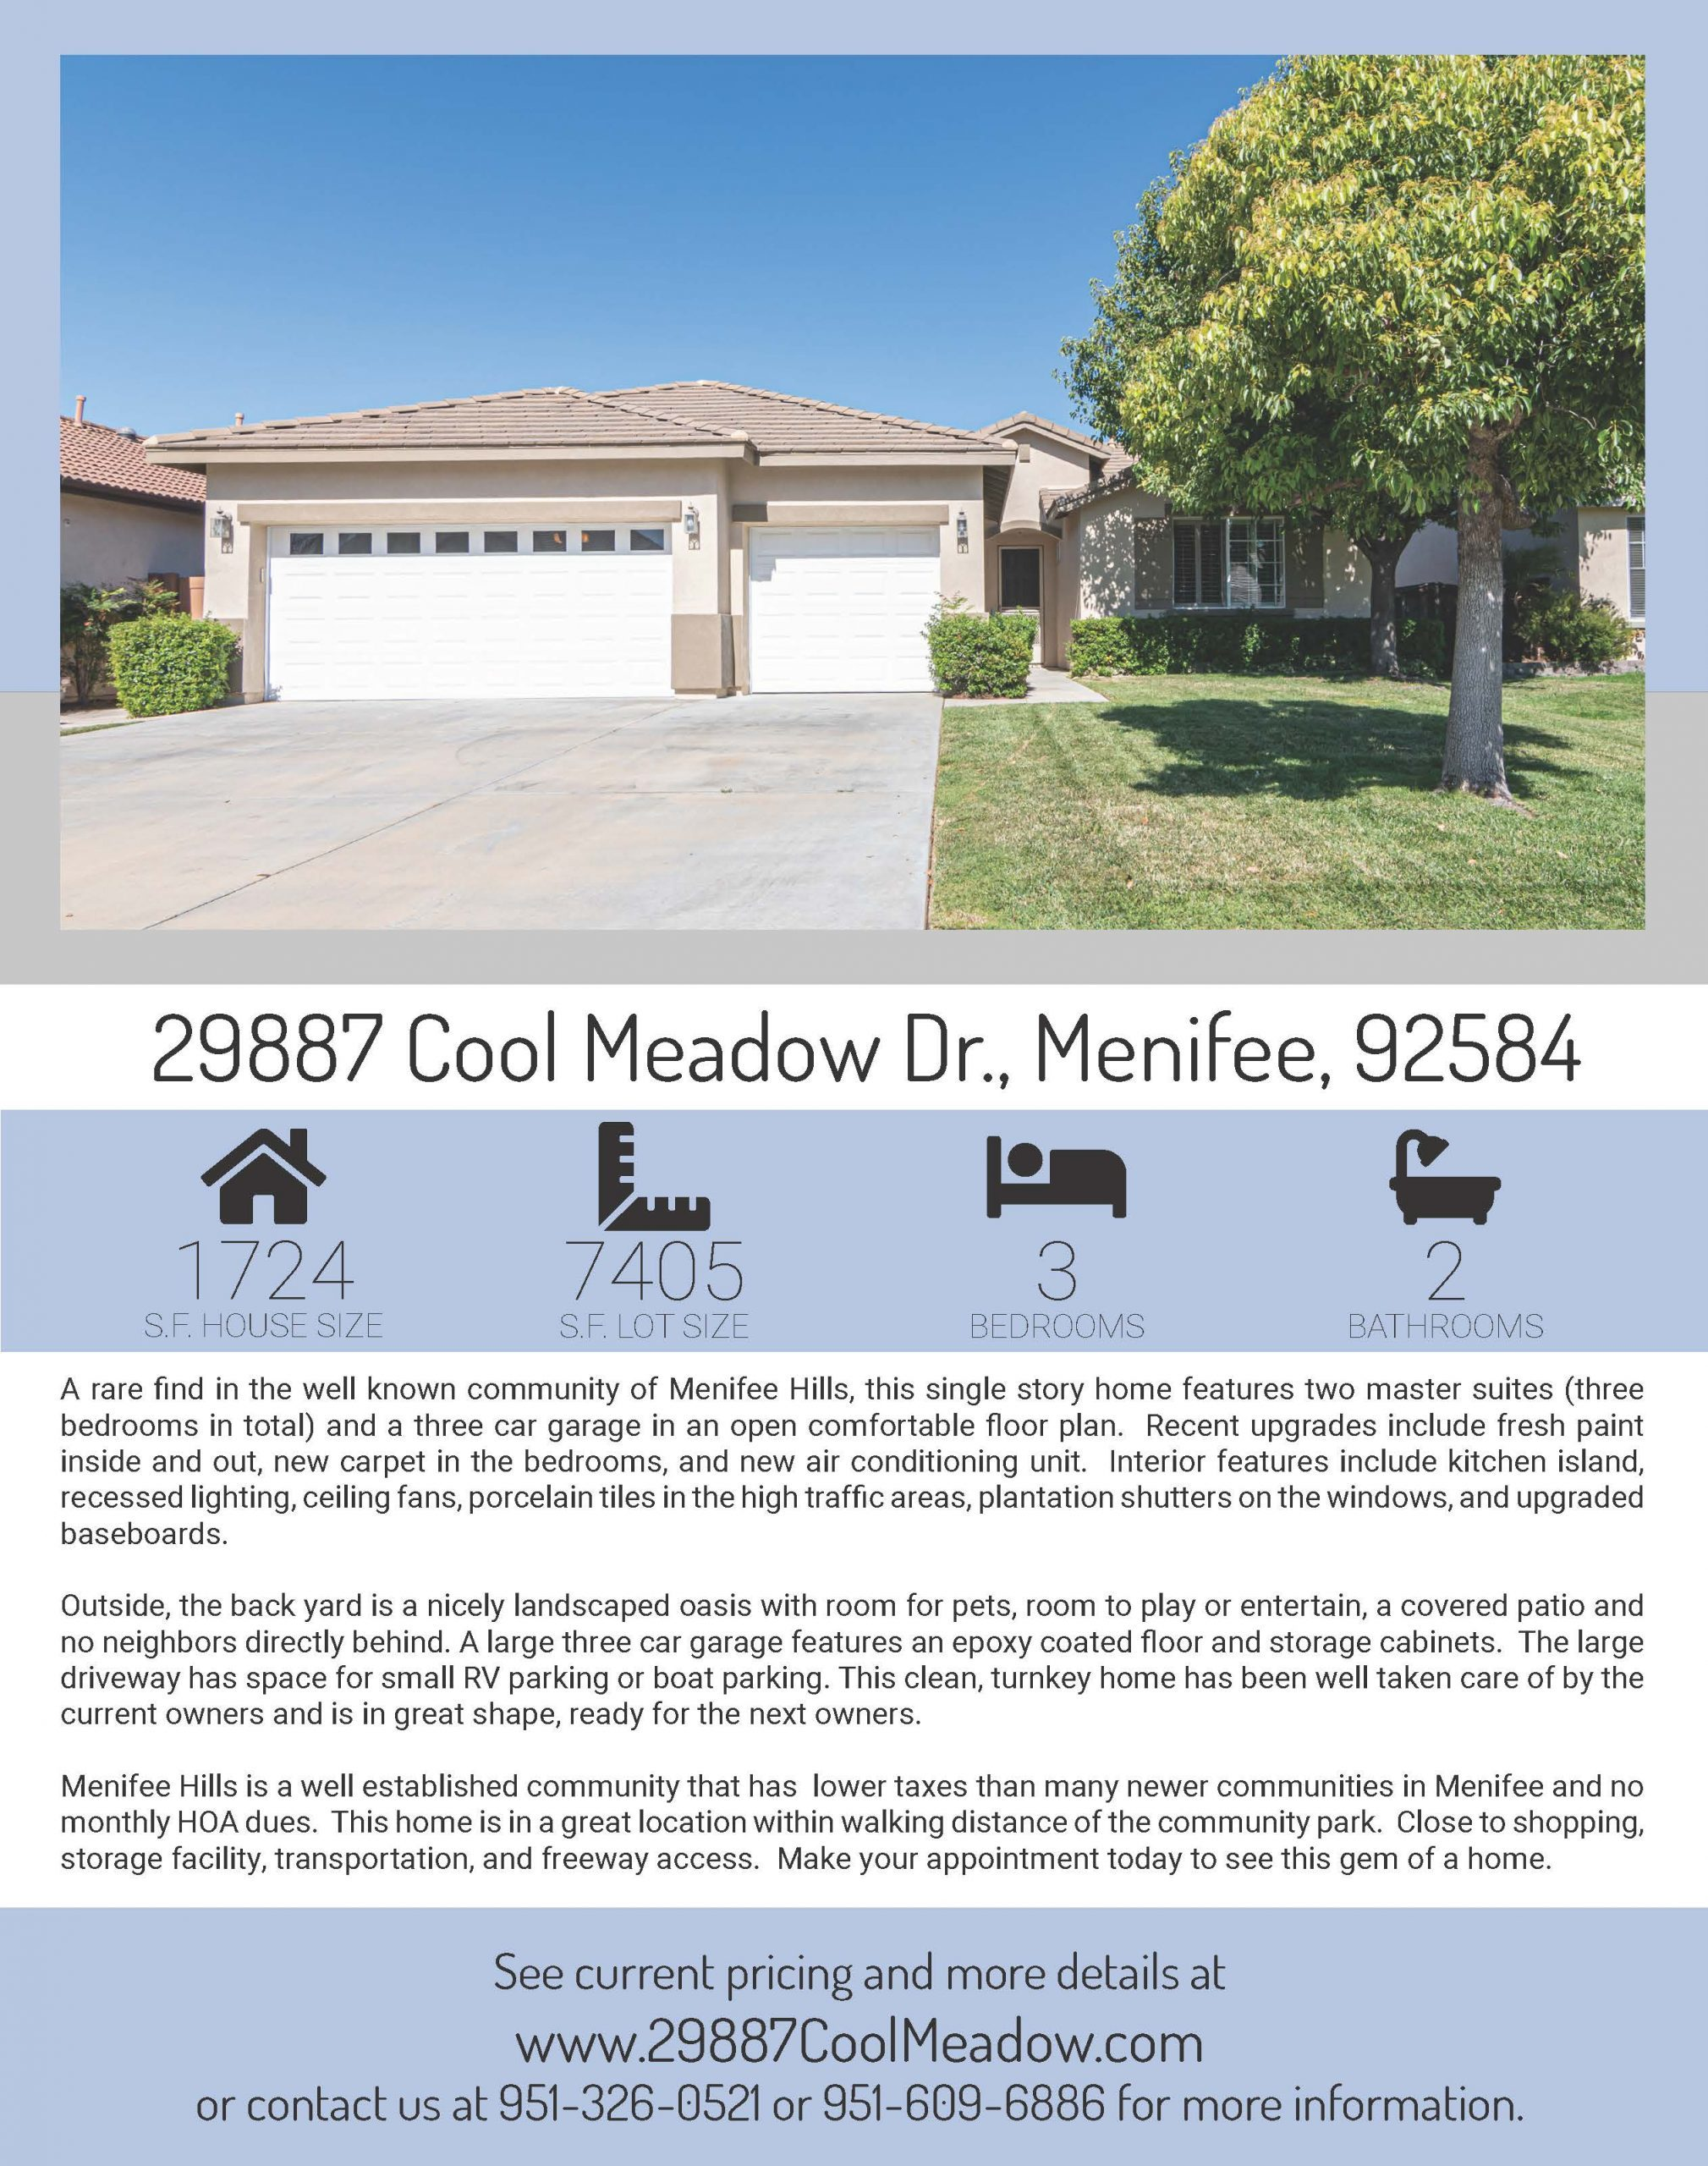 Flyer page 1 for 29887 Cool Meadow Dr.